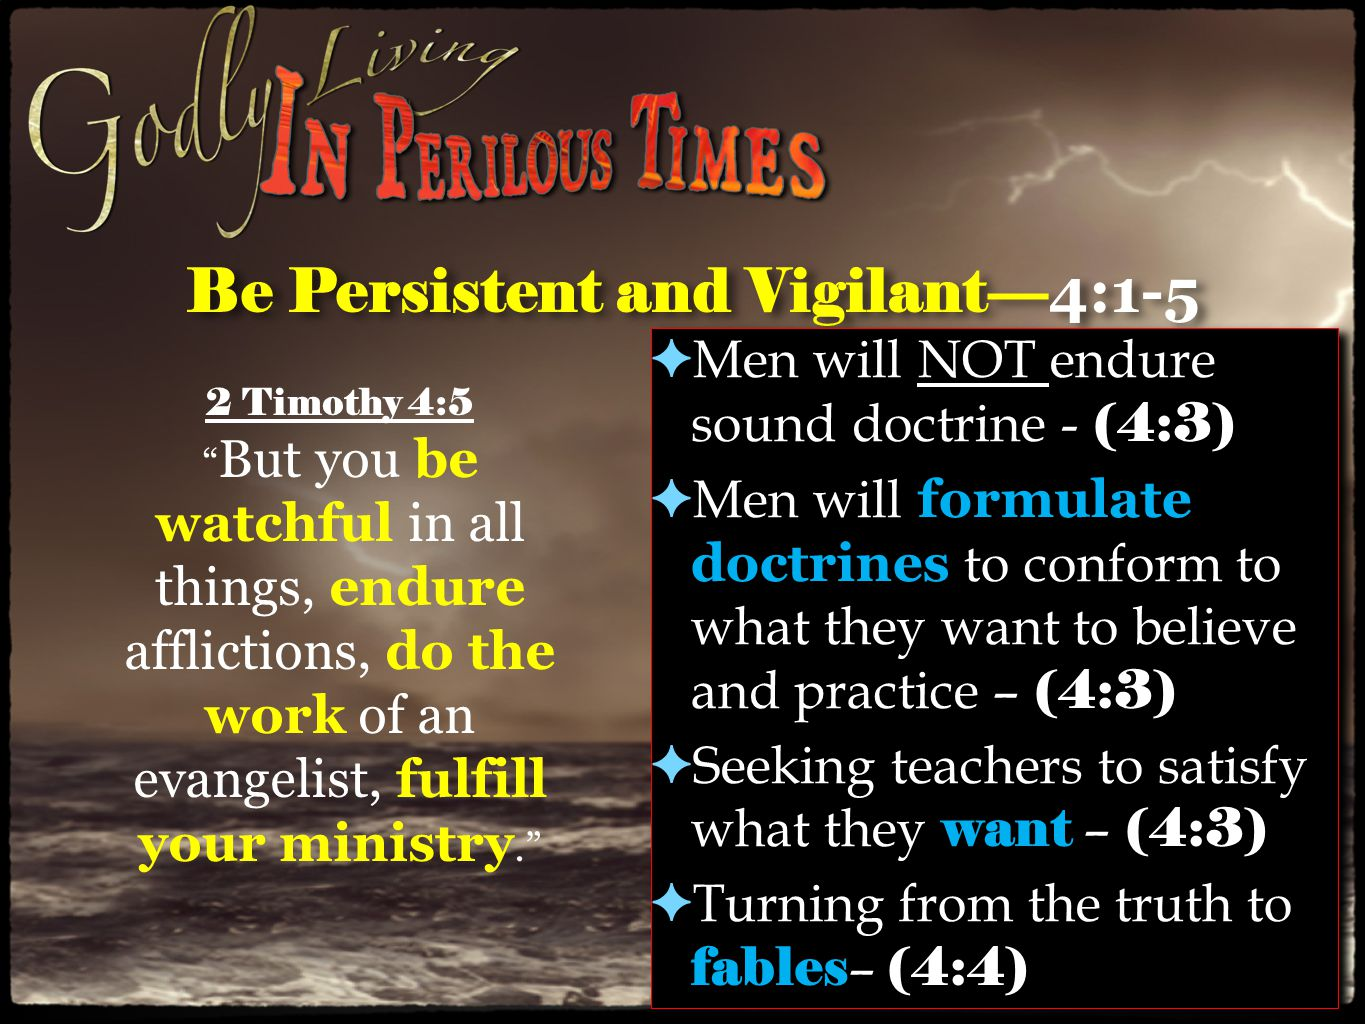 Be Persistent and Vigilant— 4:1-5 ✦ Continue to preach the truth whether people want it or not - (4:2) ✦ Convince, rebuke, exhort, with all long-suffering and teaching – (4:2) ✦ Watch, endure, work, fulfill – (4:5) ✦ Continue to preach the truth whether people want it or not - (4:2) ✦ Convince, rebuke, exhort, with all long-suffering and teaching – (4:2) ✦ Watch, endure, work, fulfill – (4:5) 2 Timothy 4:5 But you be watchful in all things, endure afflictions, do the work of an evangelist, fulfill your ministry.